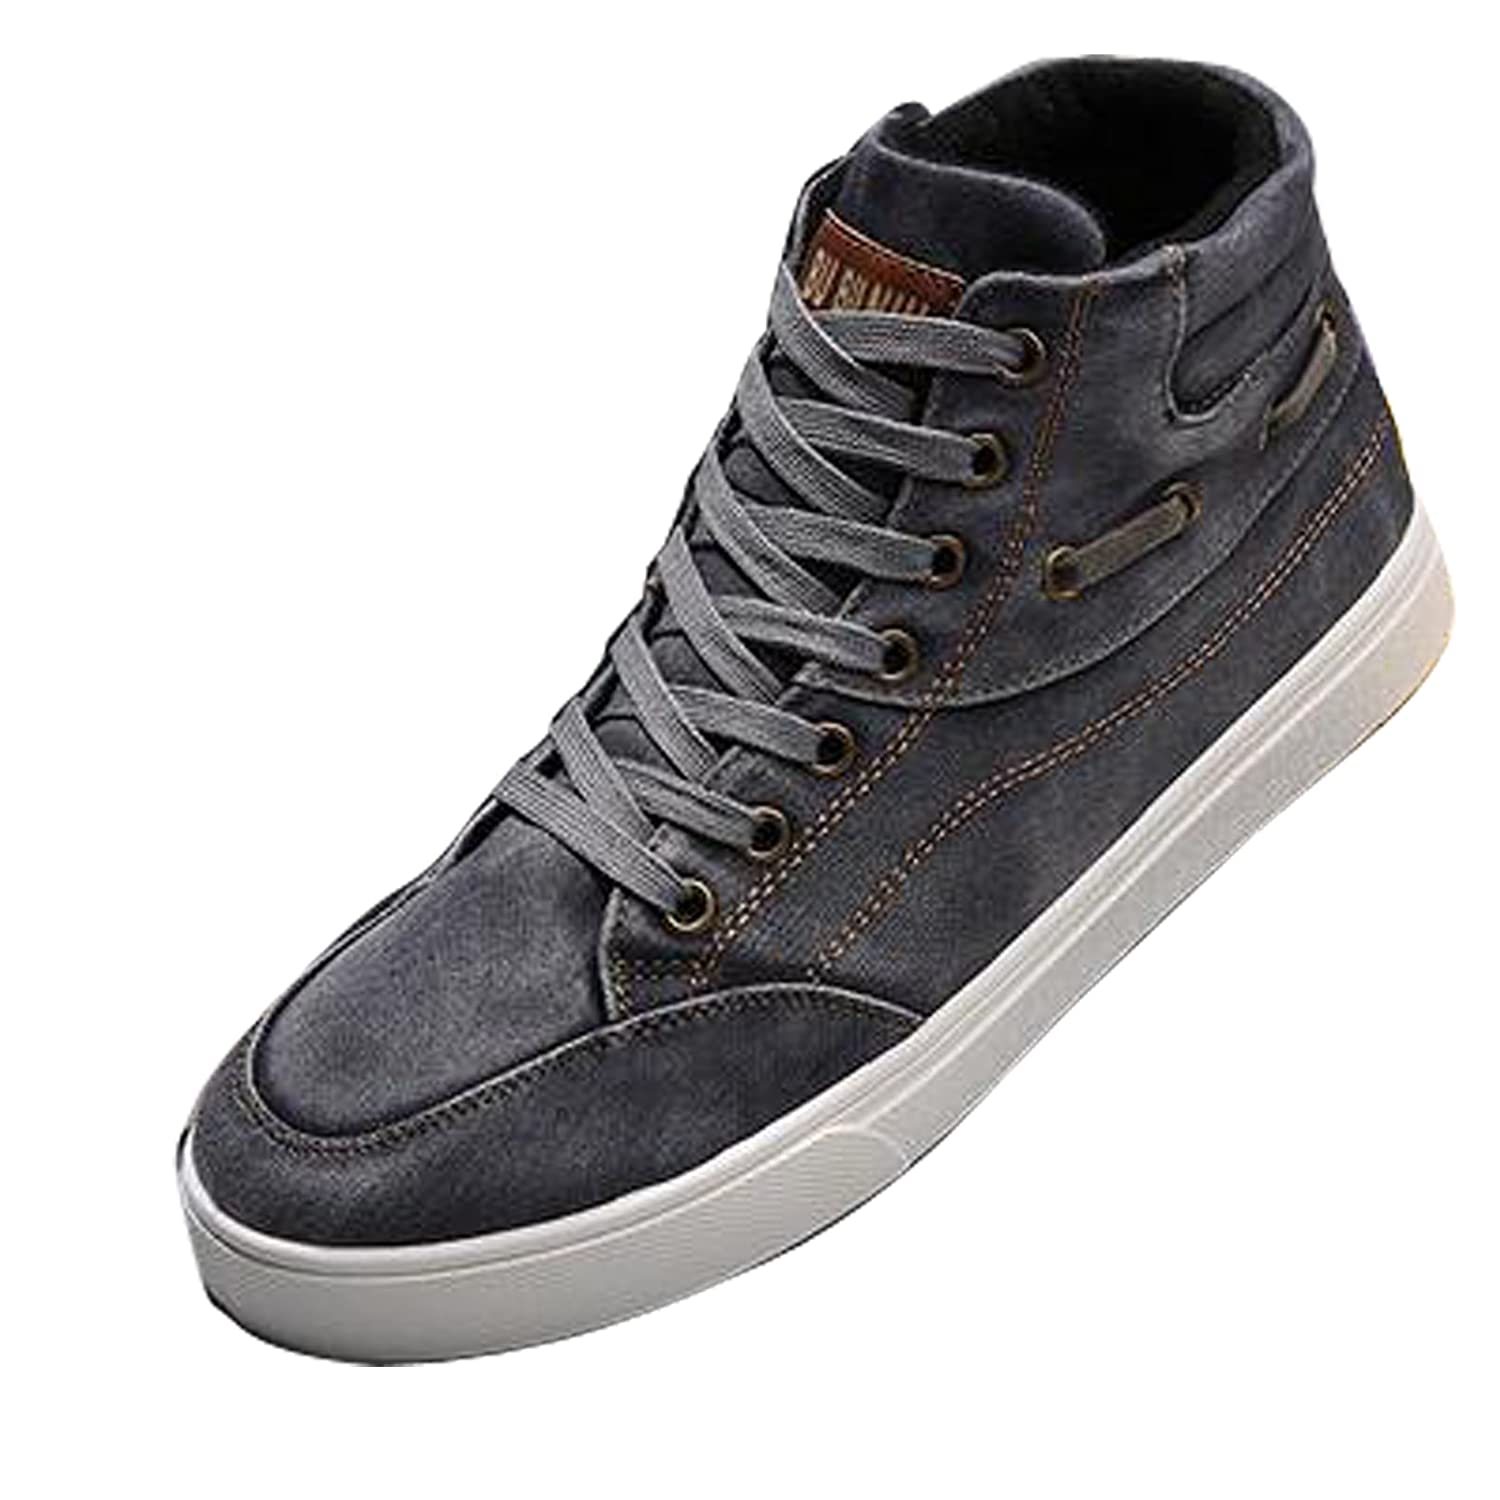 Gaorui Baskets Montantes Hommes Baskets a Lacets casual sneakers